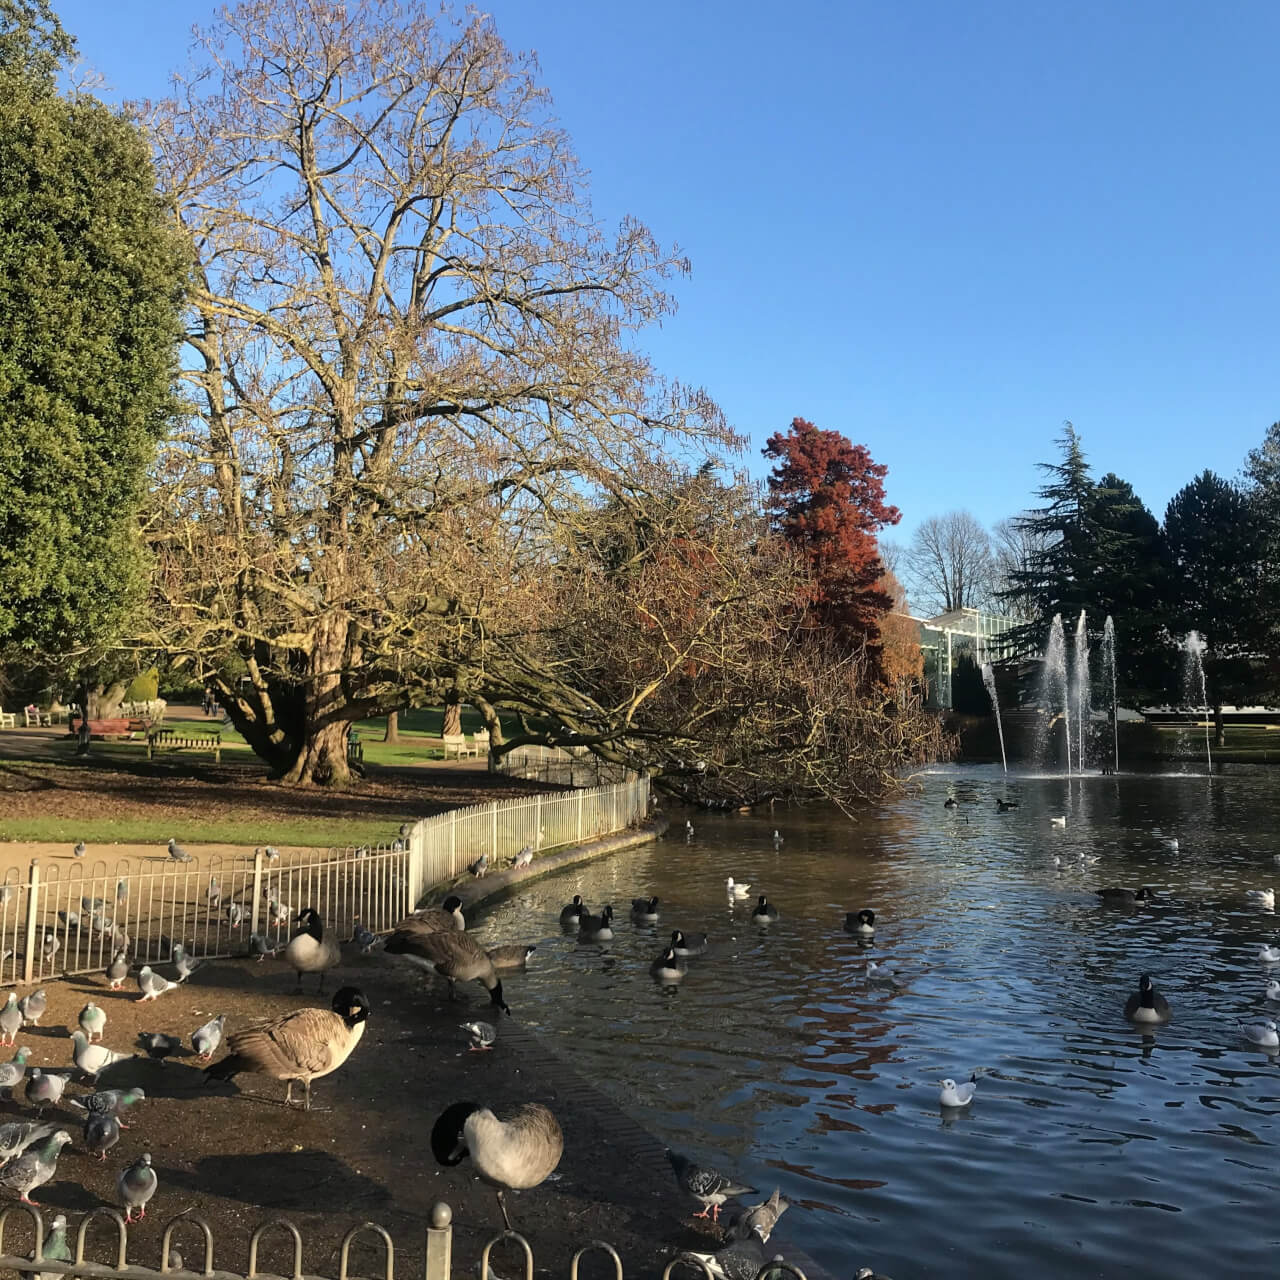 Exploring the local area: Leamington Spa